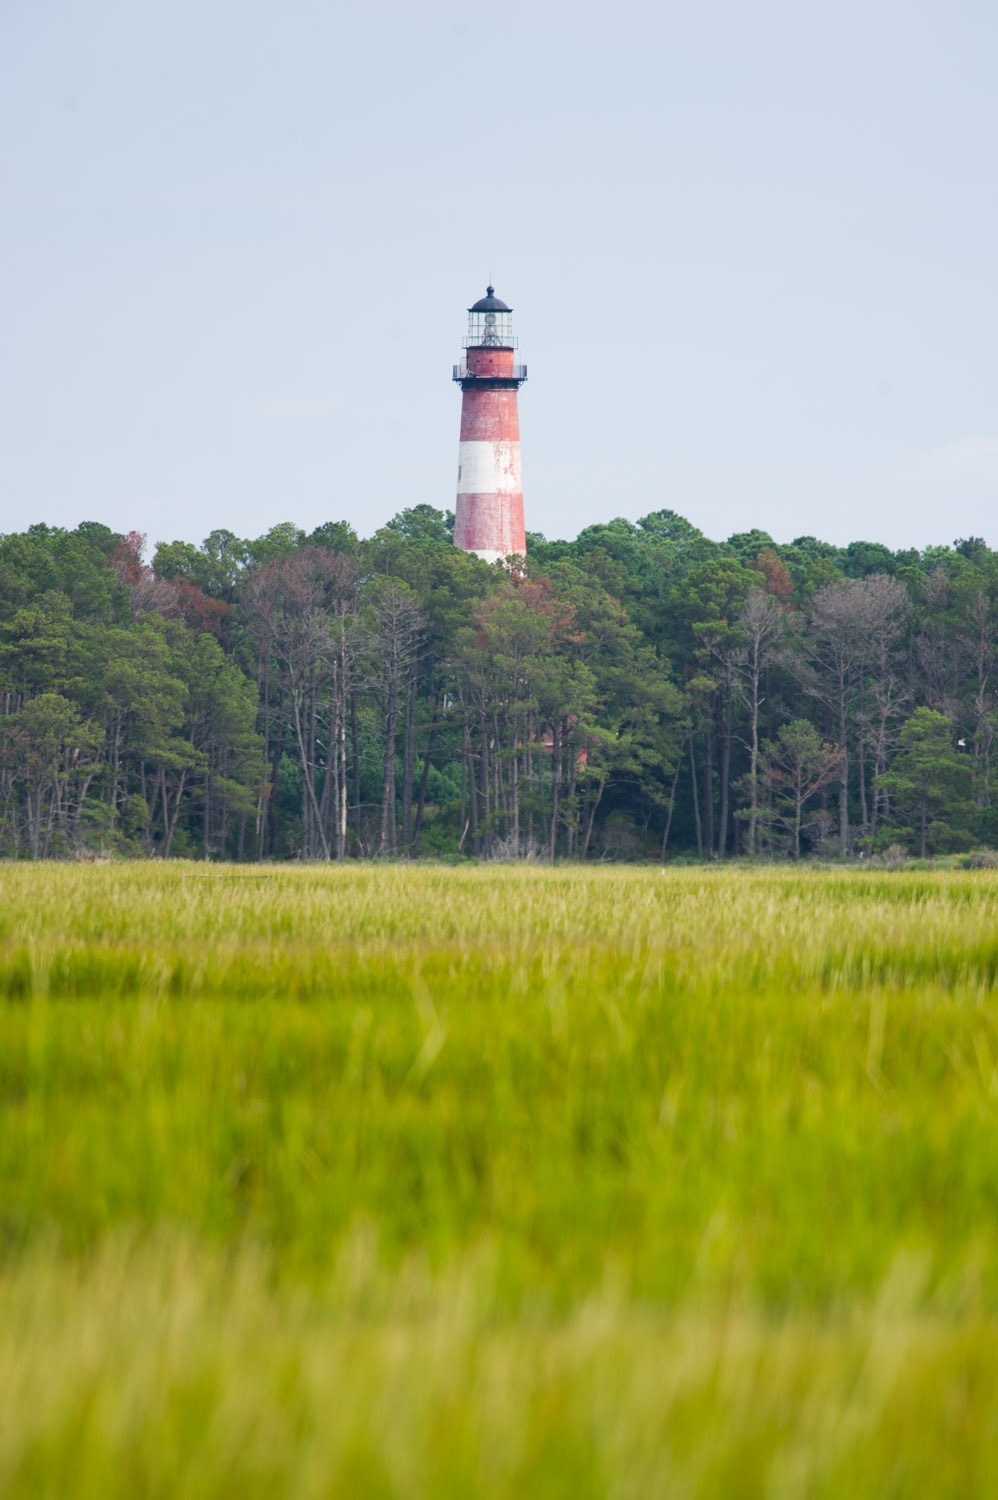 A view from our dock out to the red & white striped Chincoteague Lighthouse